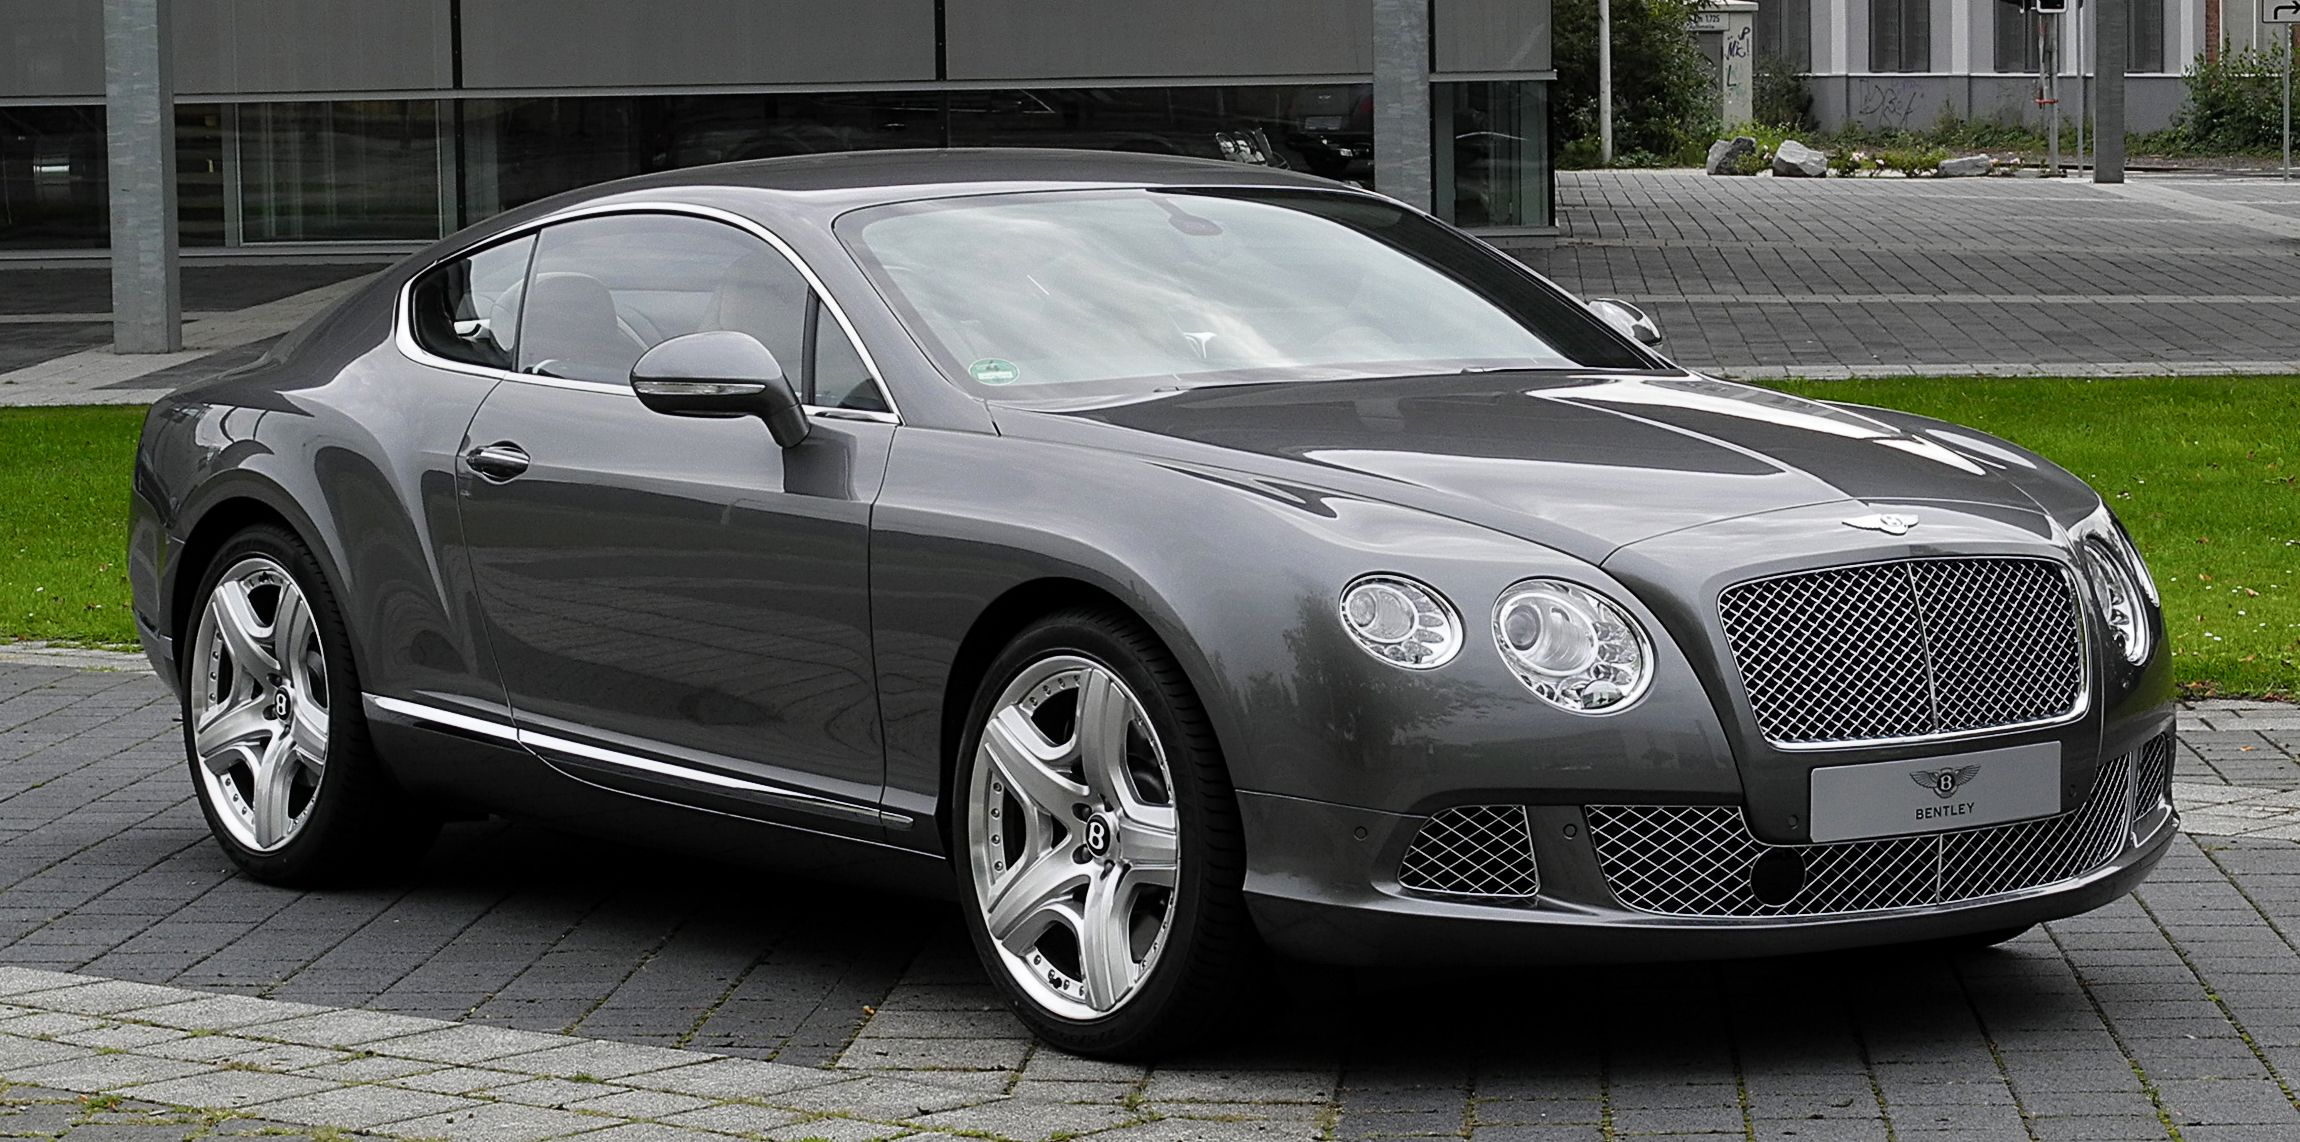 1000+ images about Bentley on Pinterest  Bentley continental ...